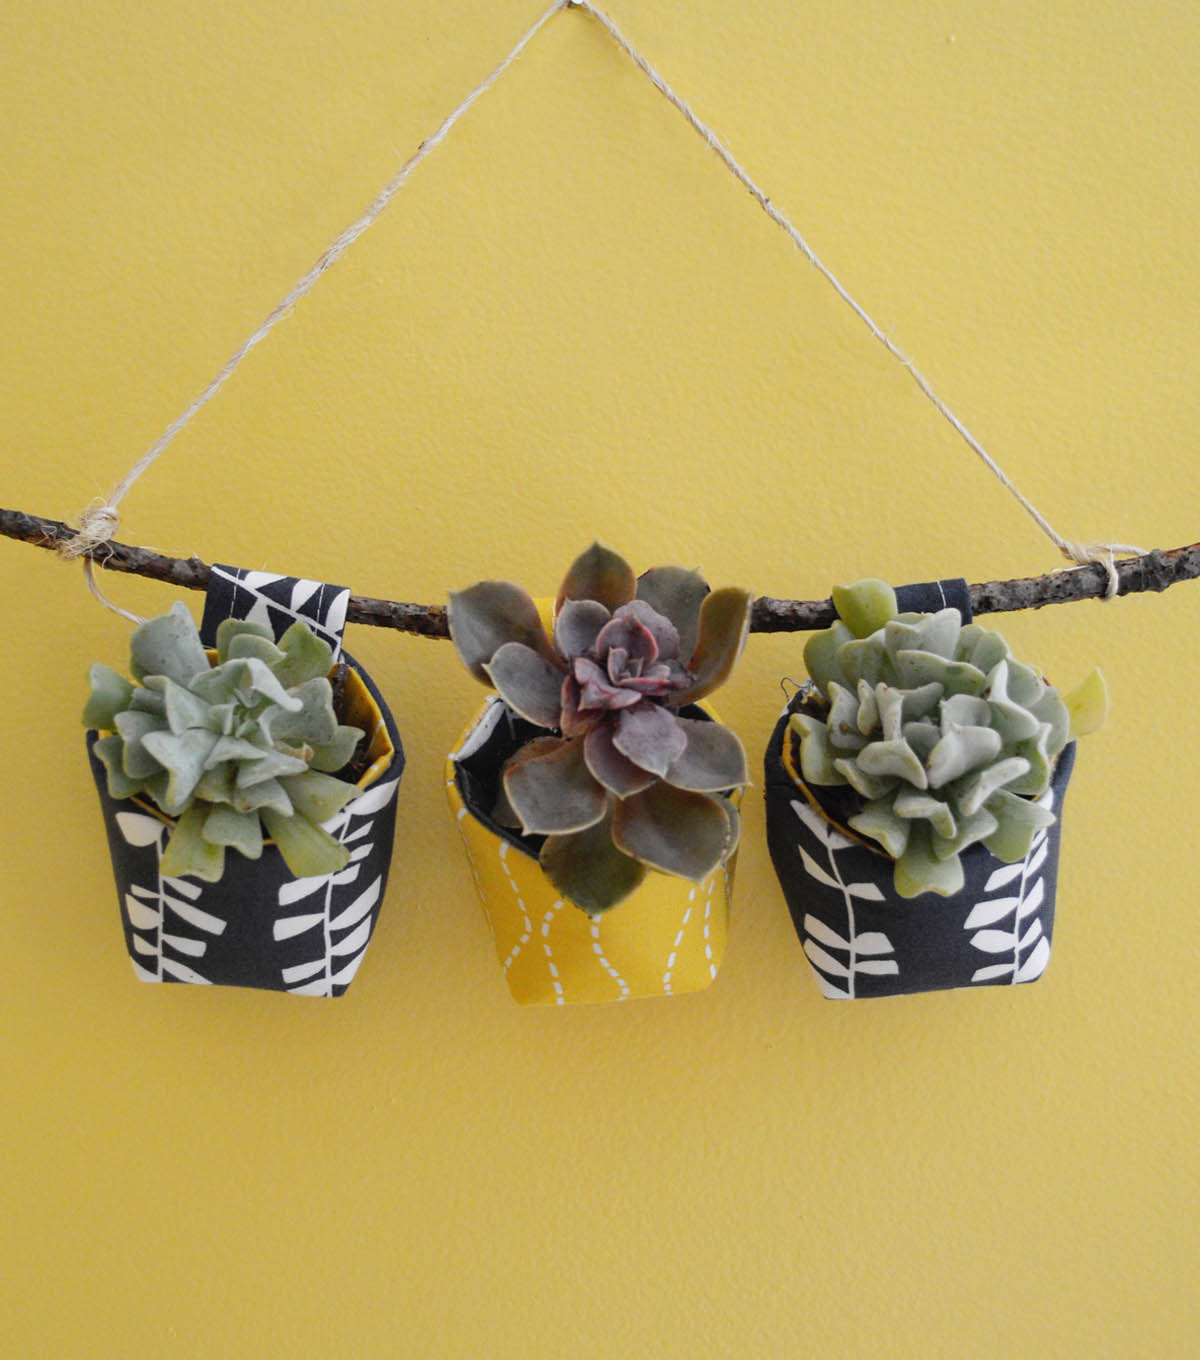 How To Make Succulent Wall Planters